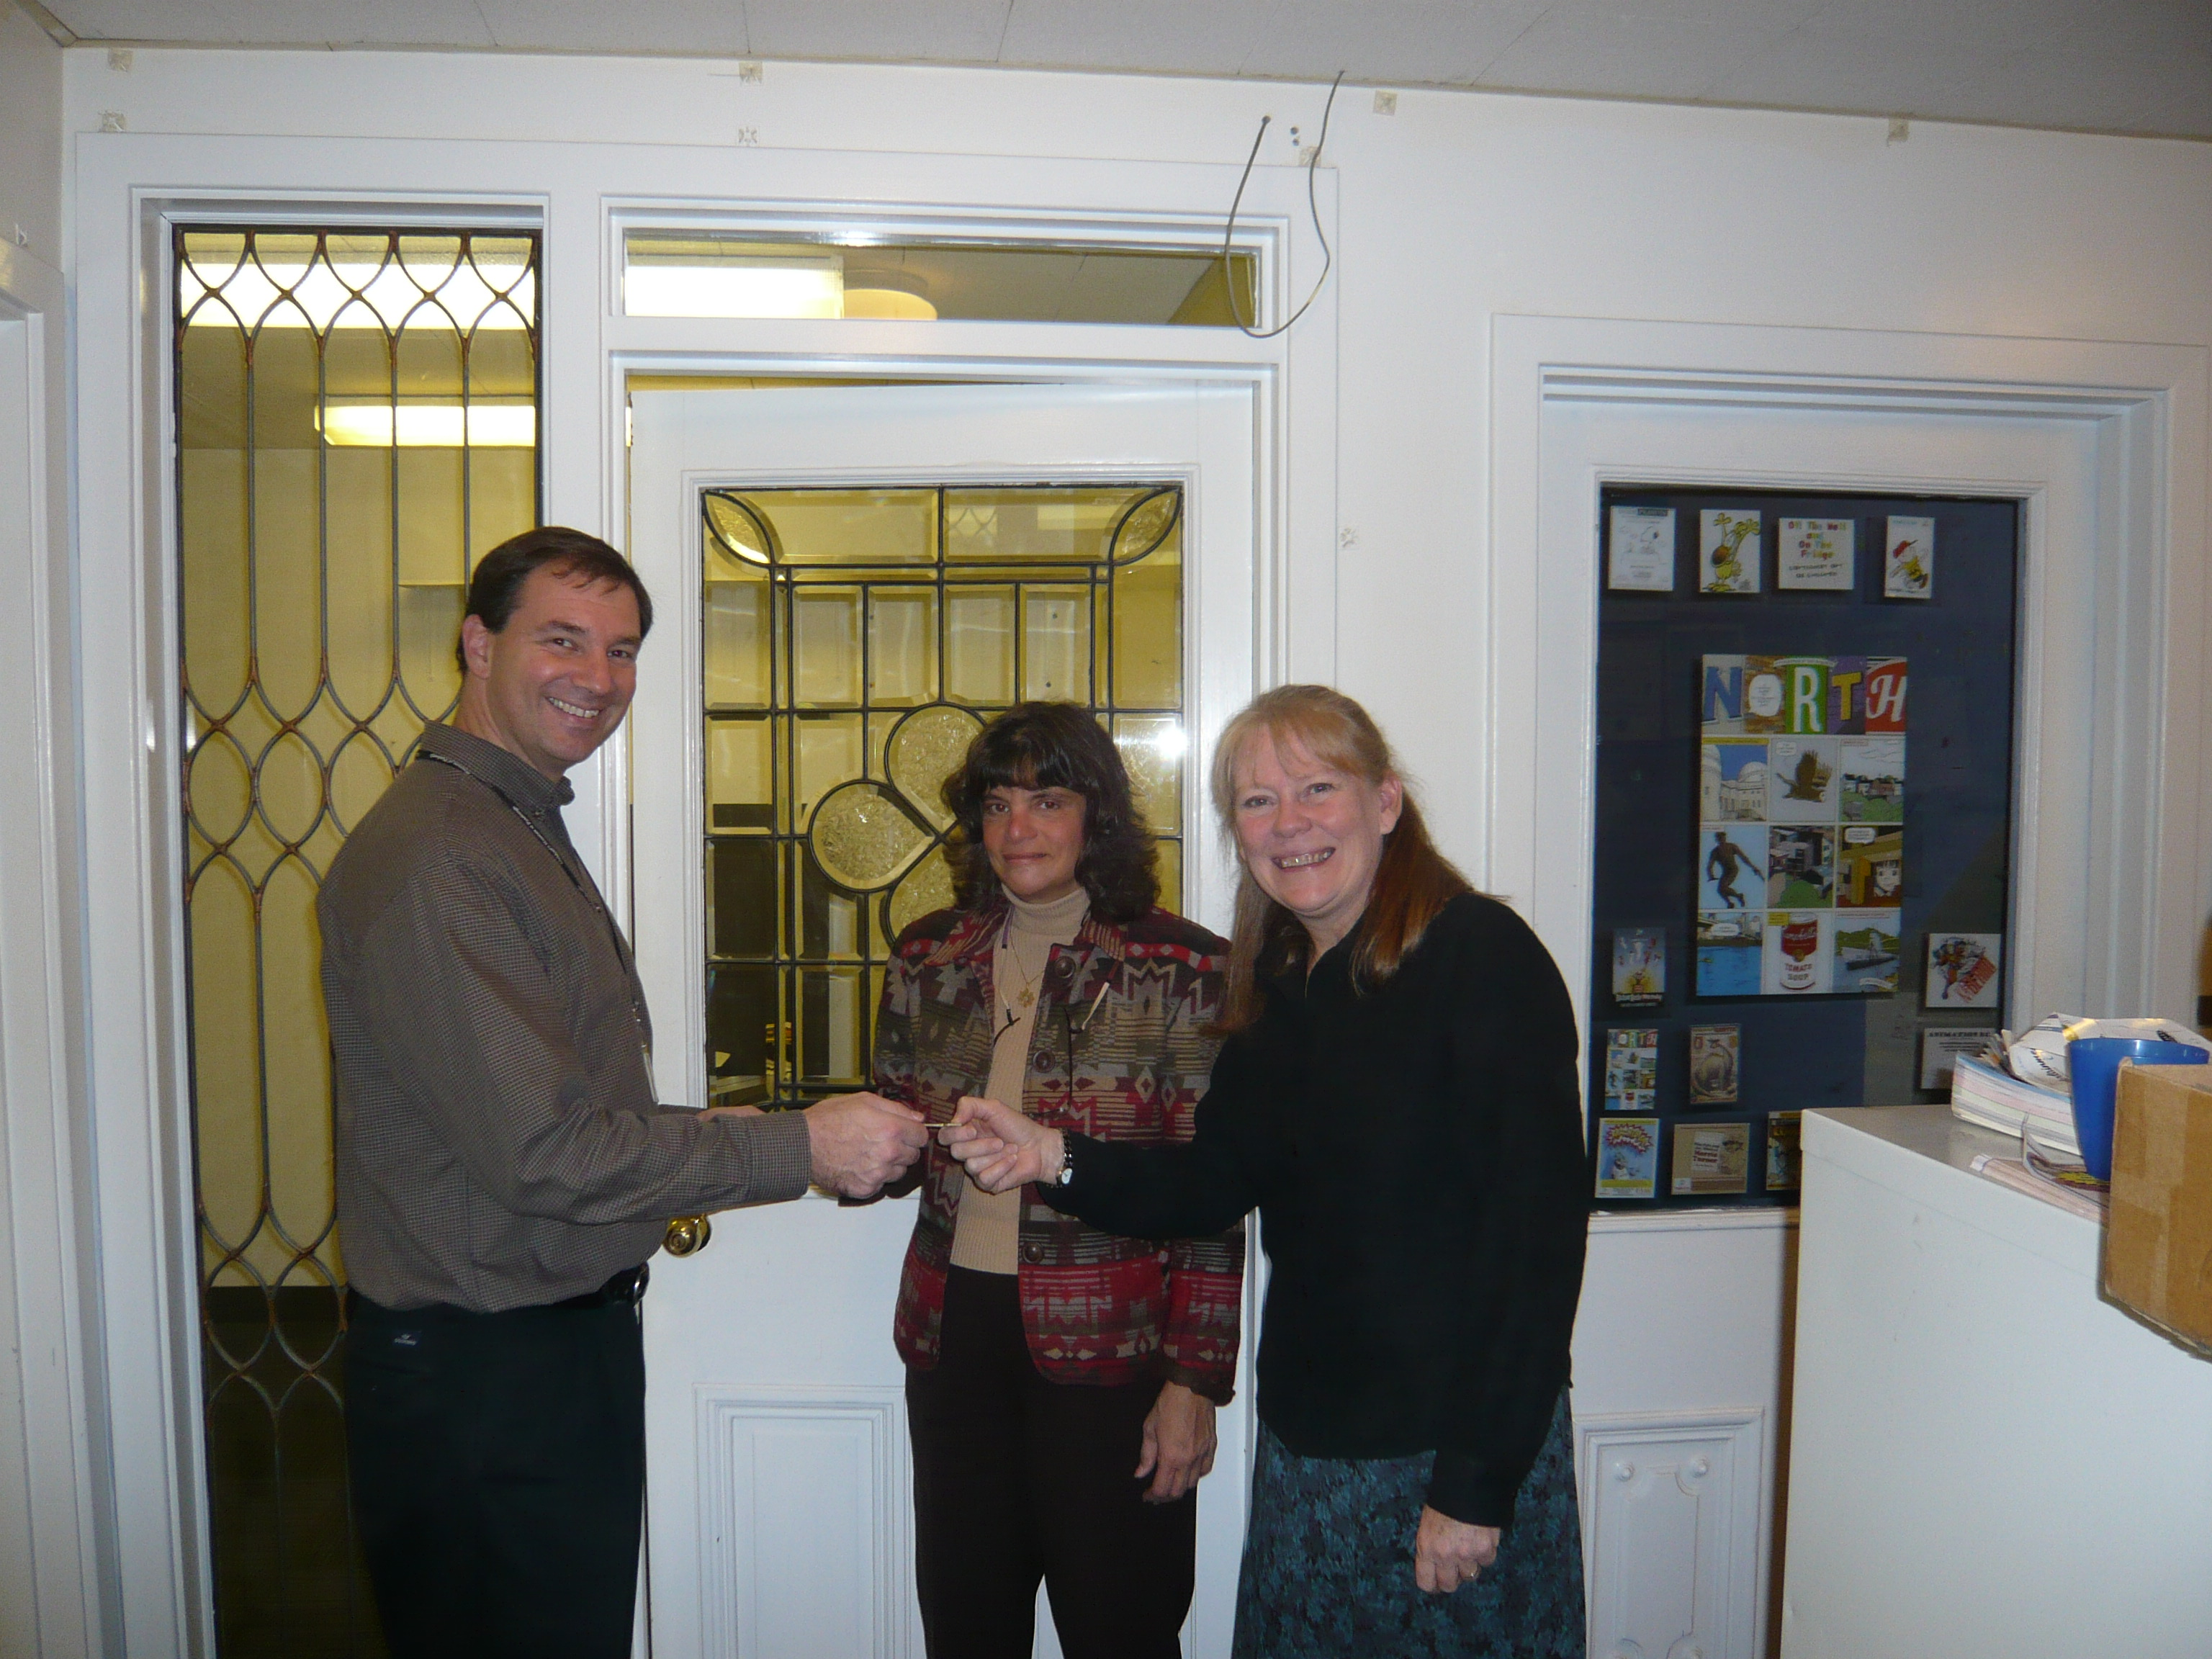 Margaret and Paula get the keys to their new office at the Children's Museum